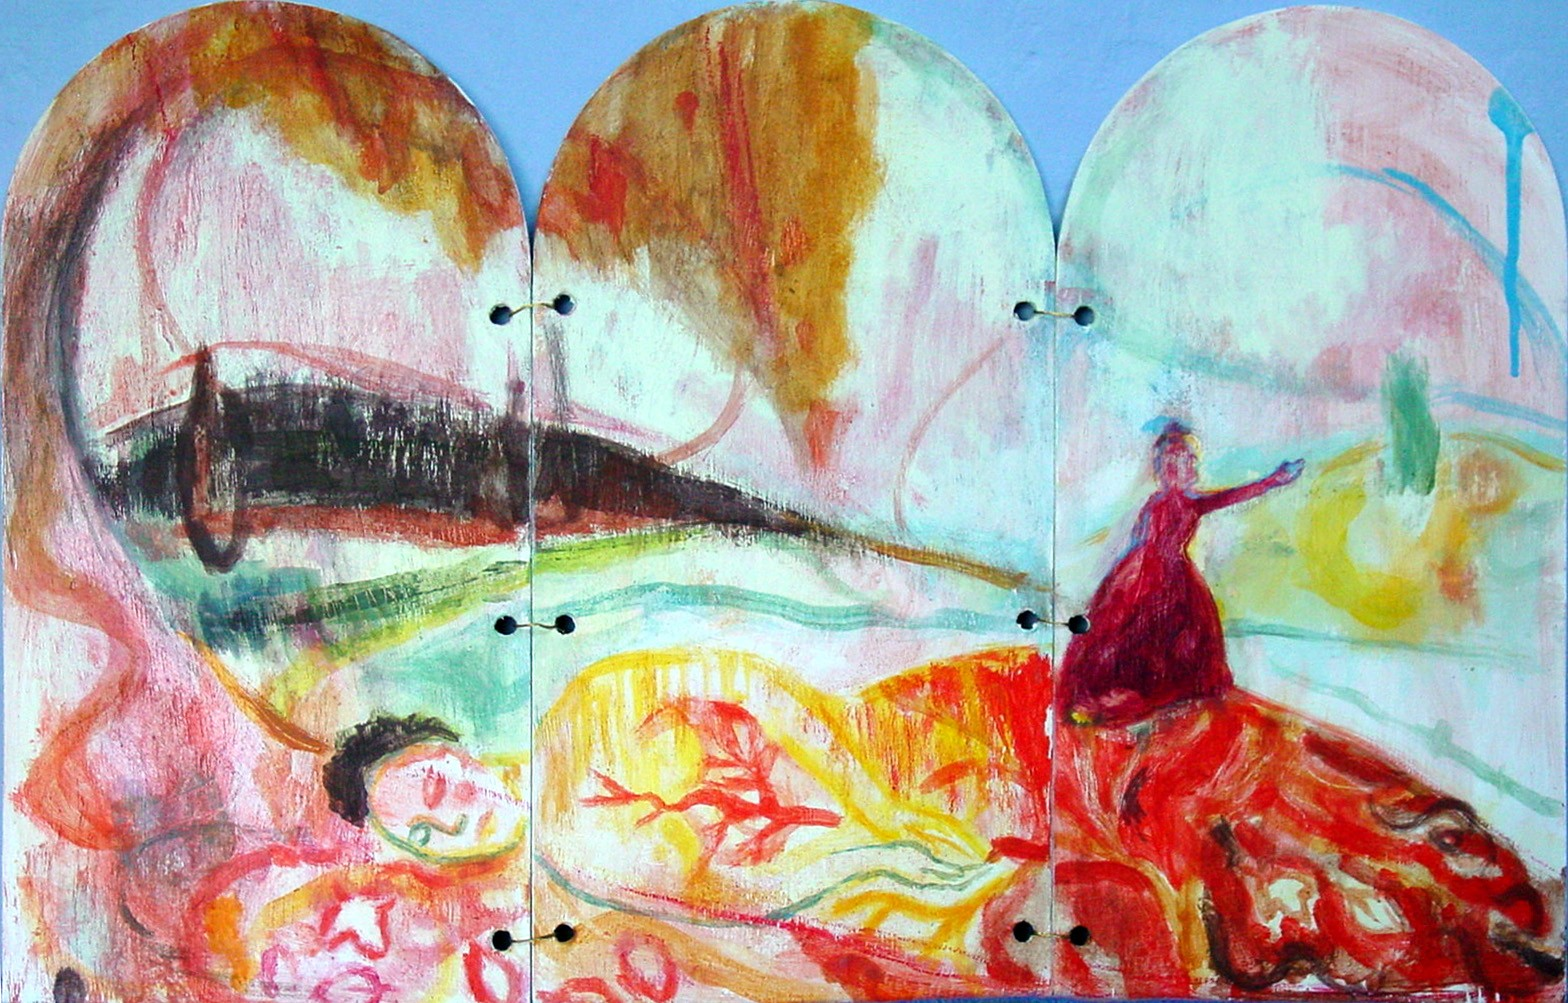 Triptych - South Shield - 2002 - Acrylic, Mixed Media on Plywood - 60 X 37 cm